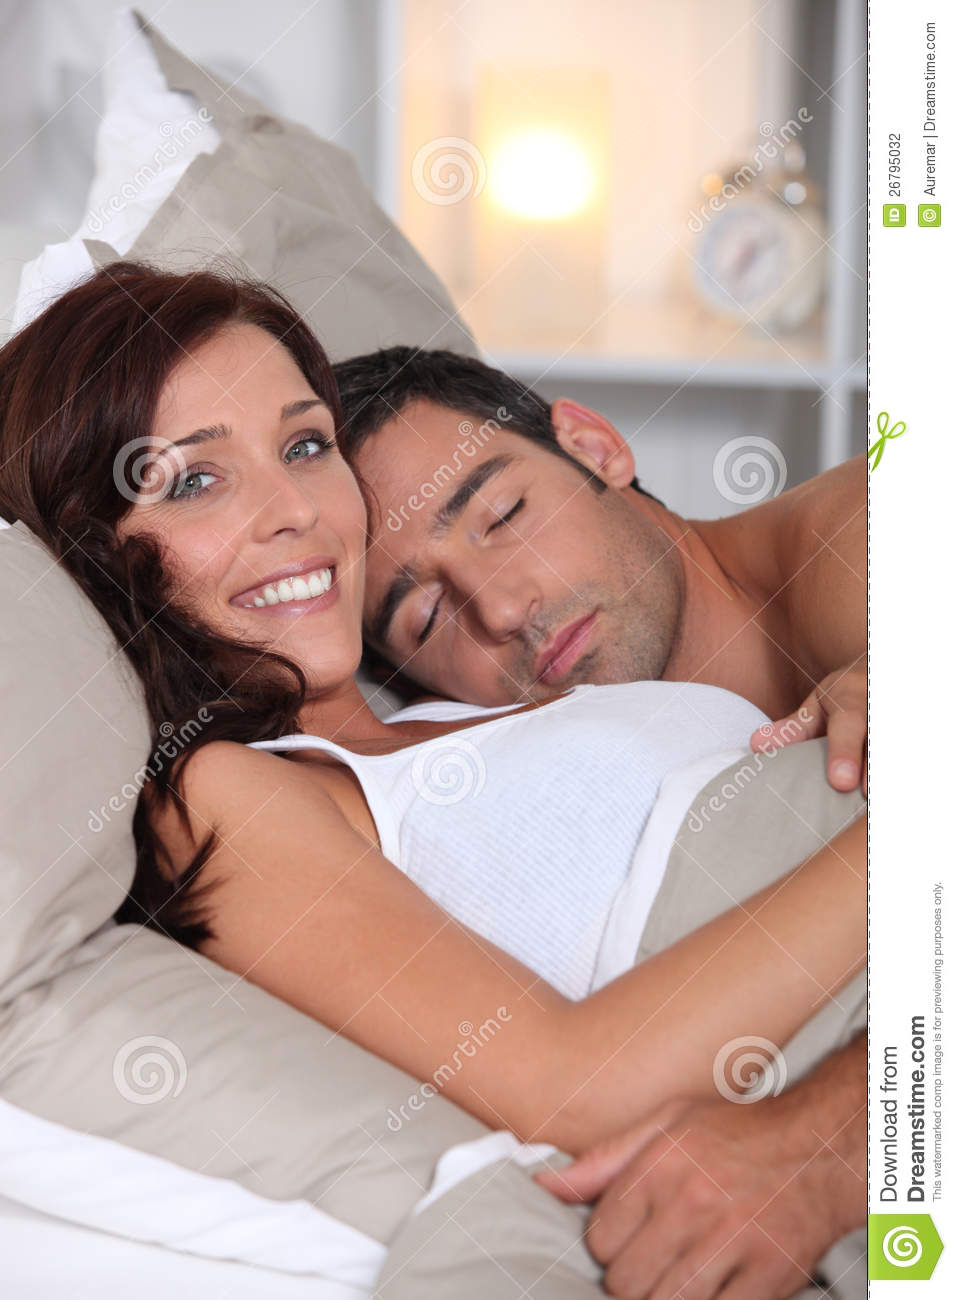 How To Sleep With Wife In Bed